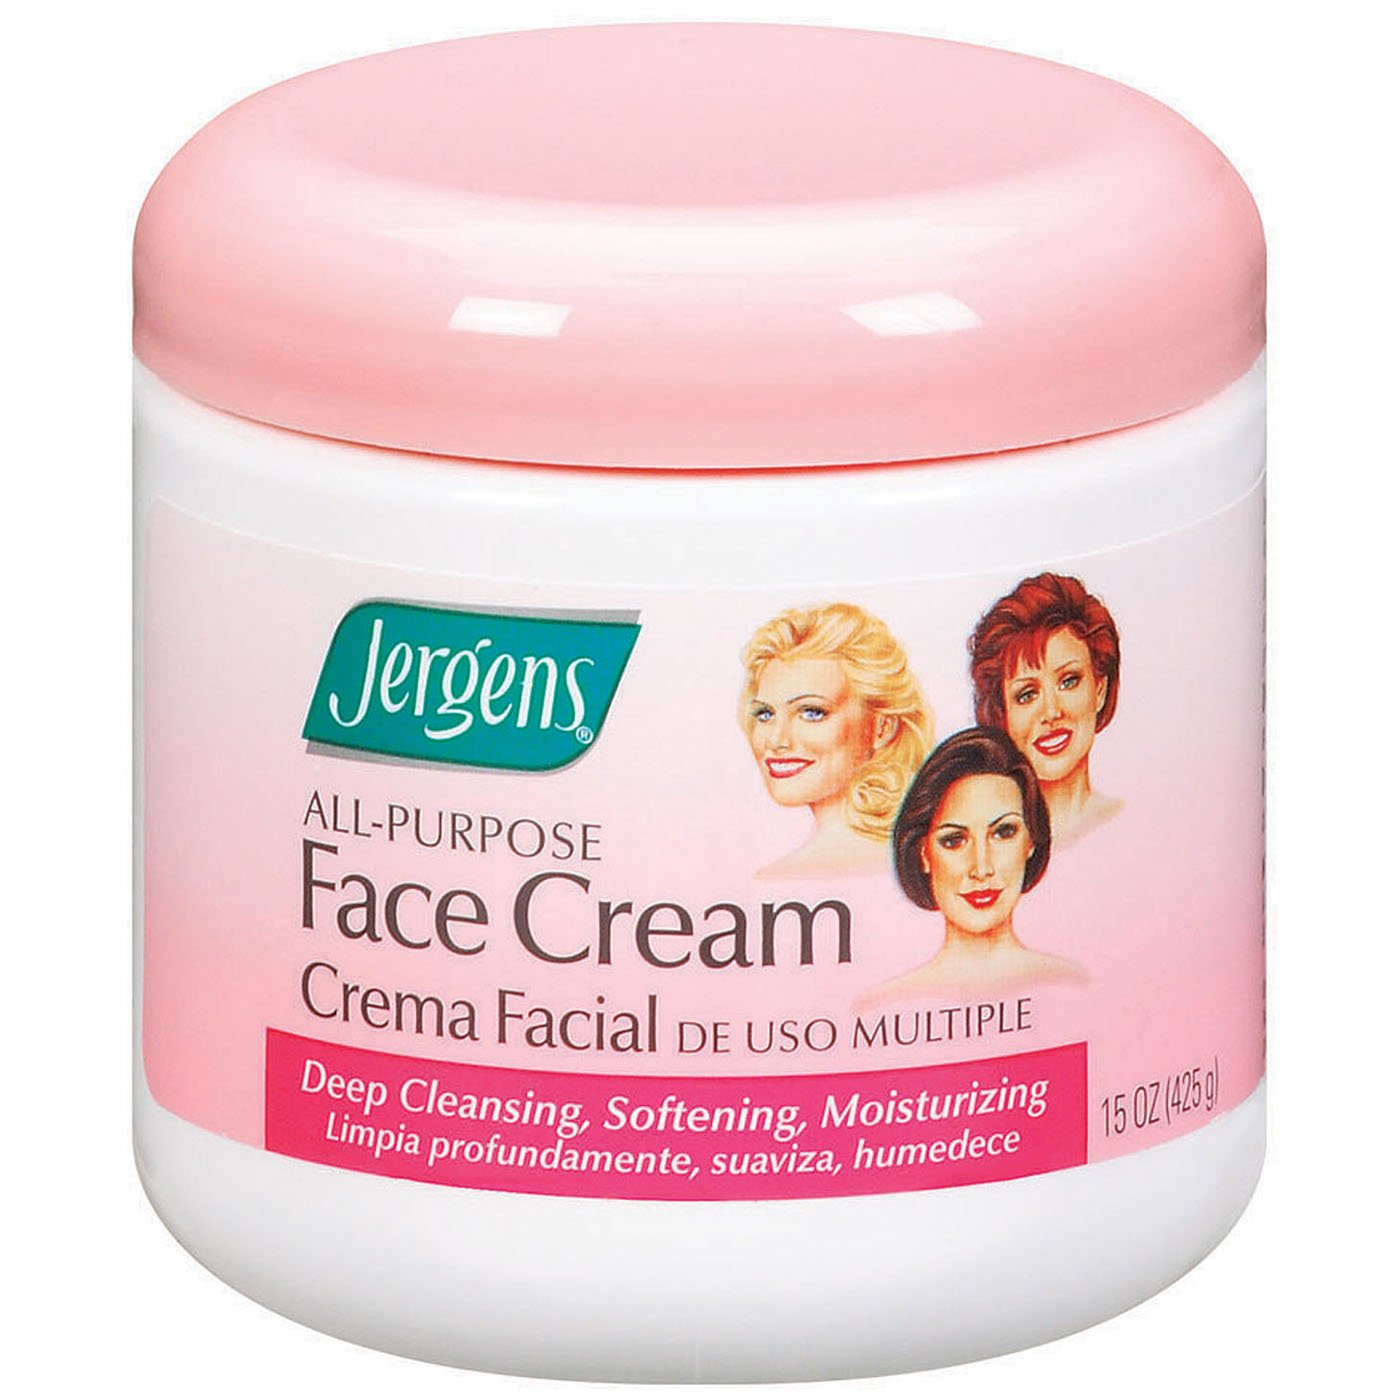 Jergens All Purpose Face Cream, Deep Cleansing Facial Cream, Makes Skin Smooth and Vibrant, 15 Ounce (Pack of 3)